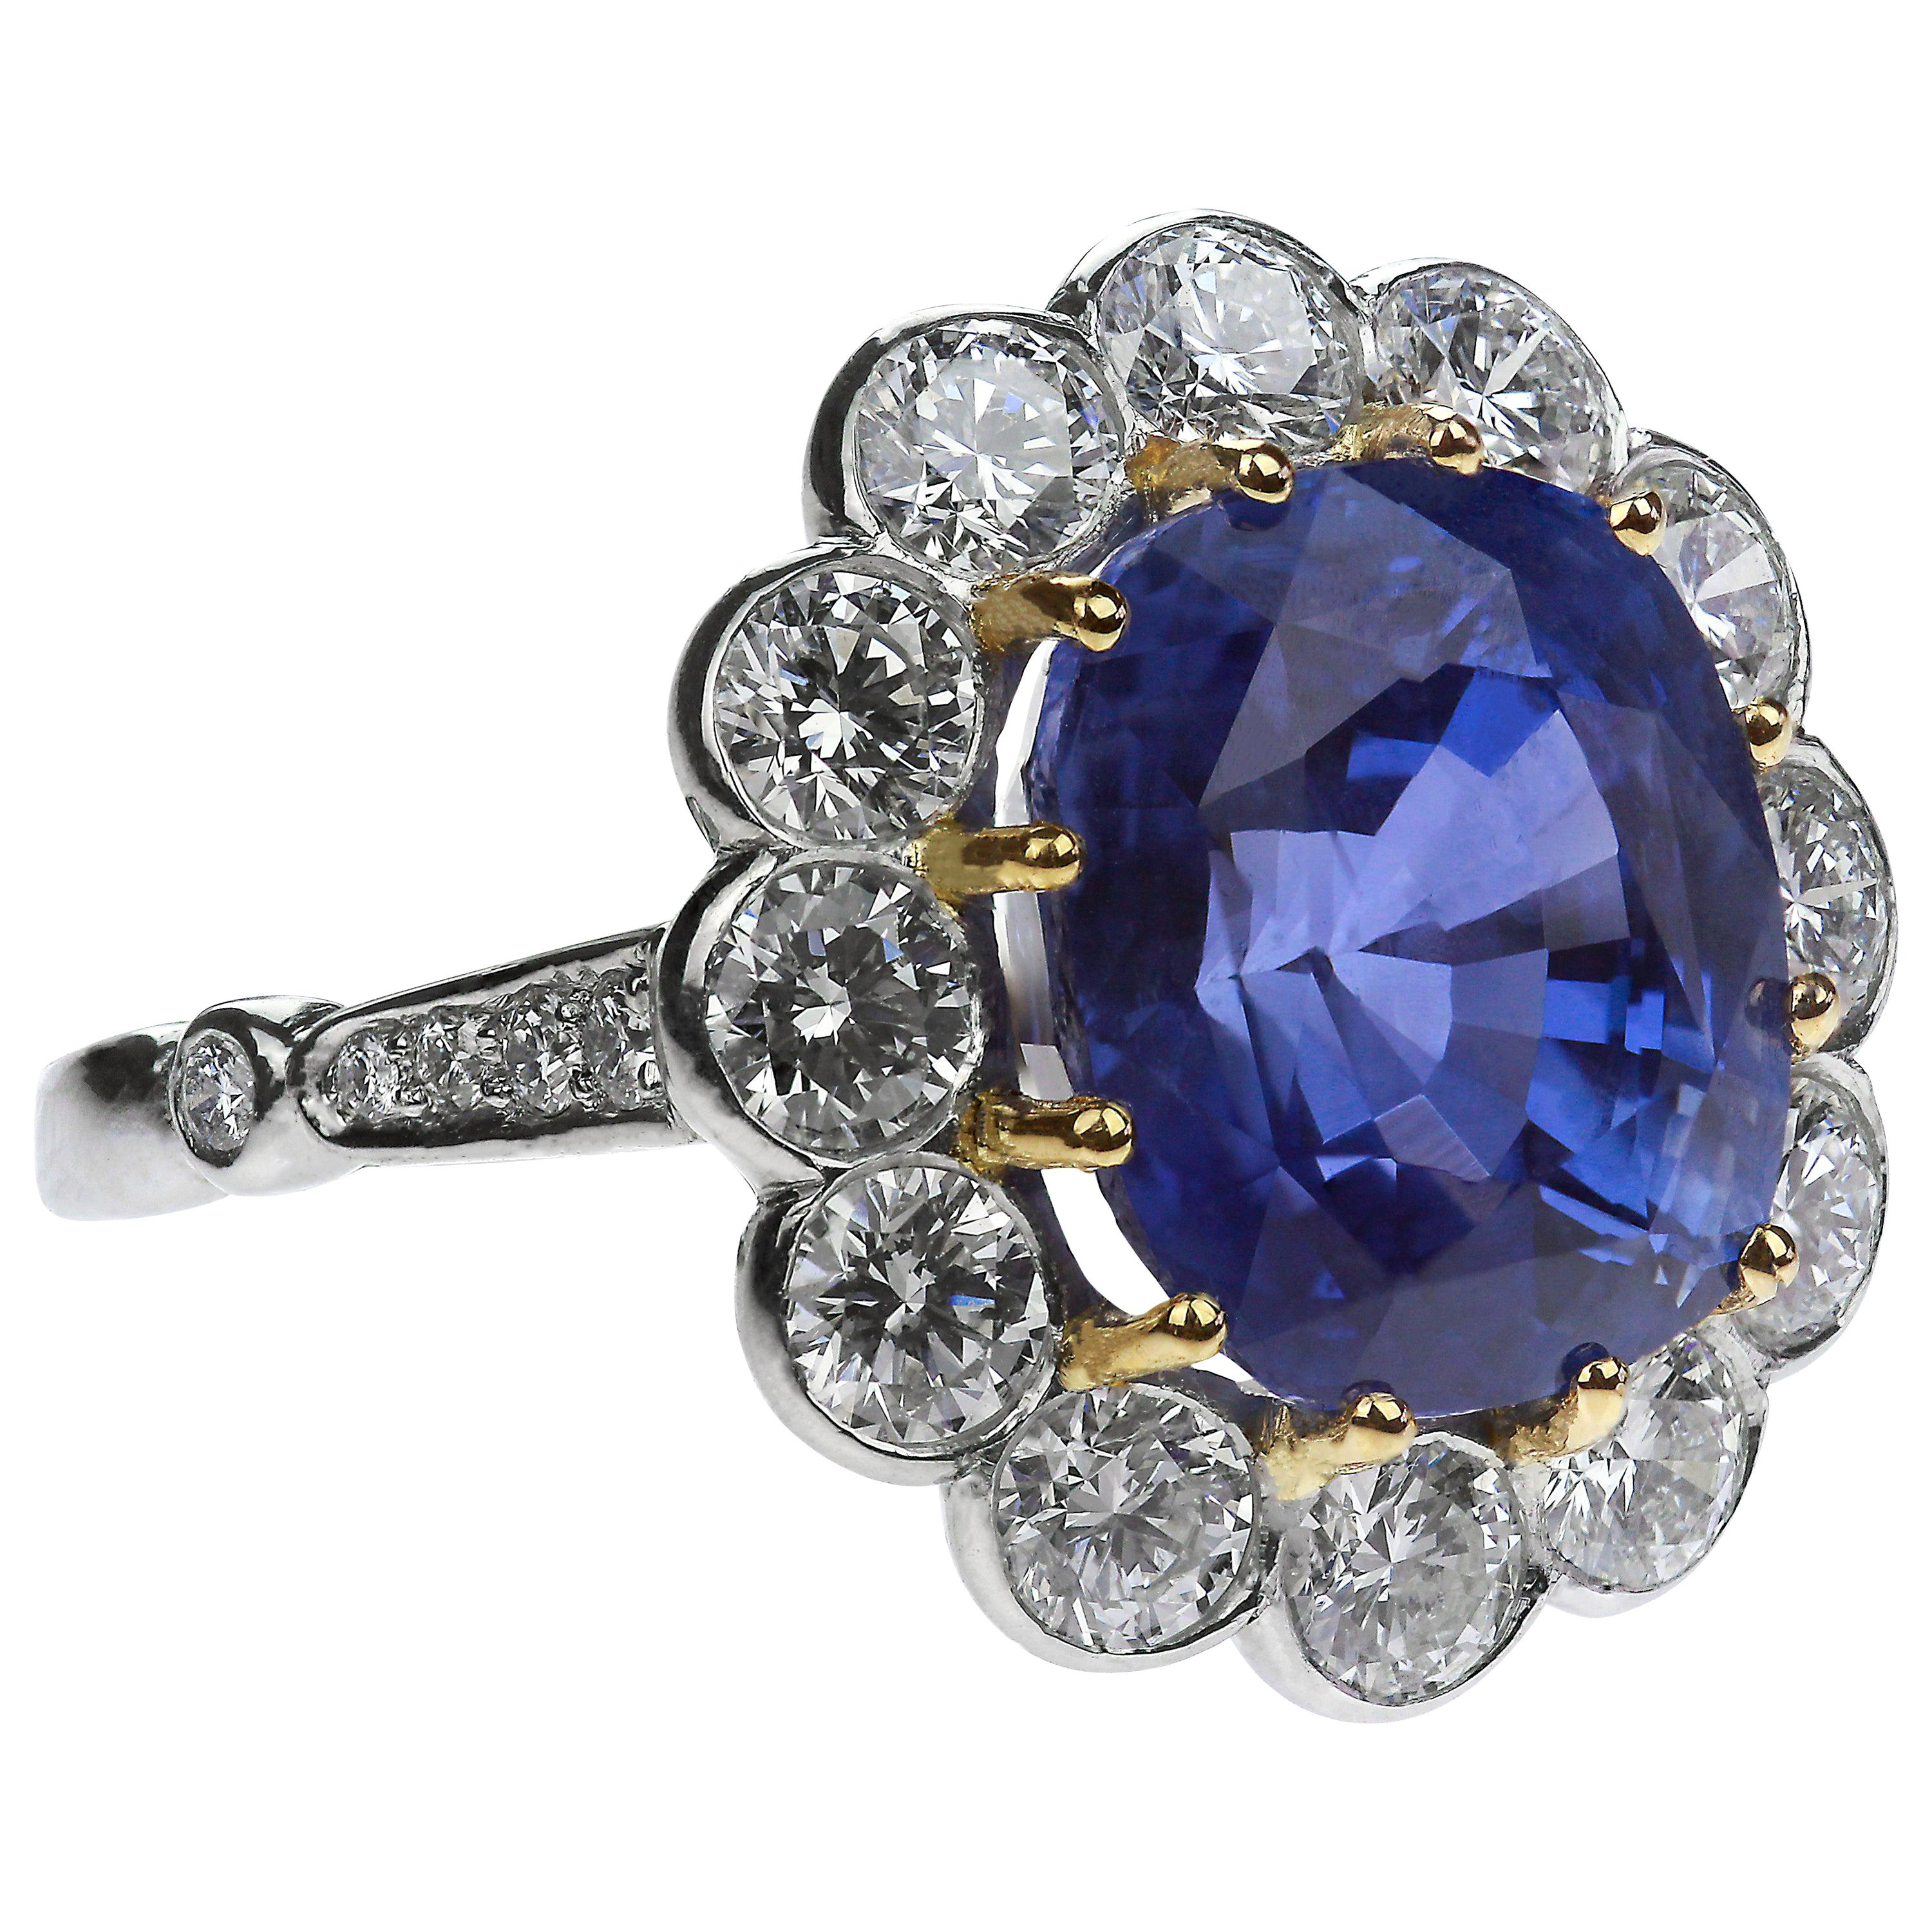 Certified Natural Untreated Sapphire 9.2 Carat and Diamond Oval Ring in Platinum